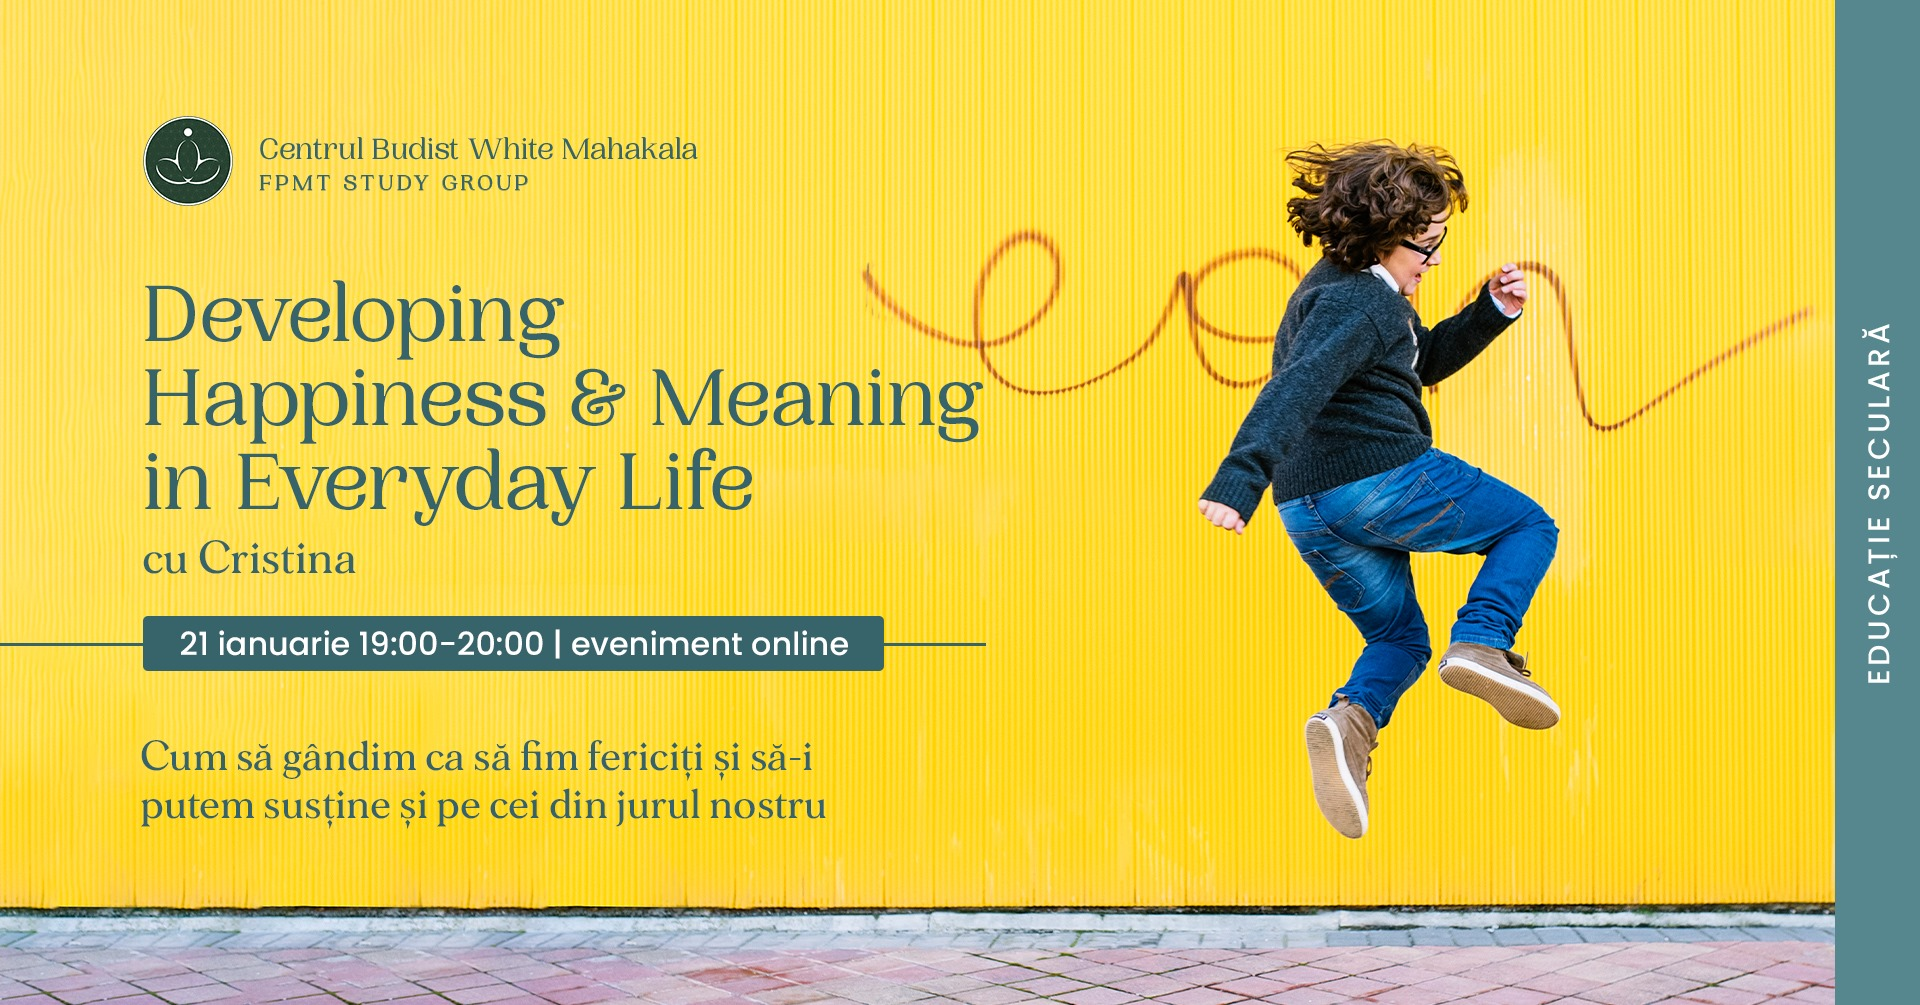 Developing Happiness & Meaning in Everyday Life cu Cristina